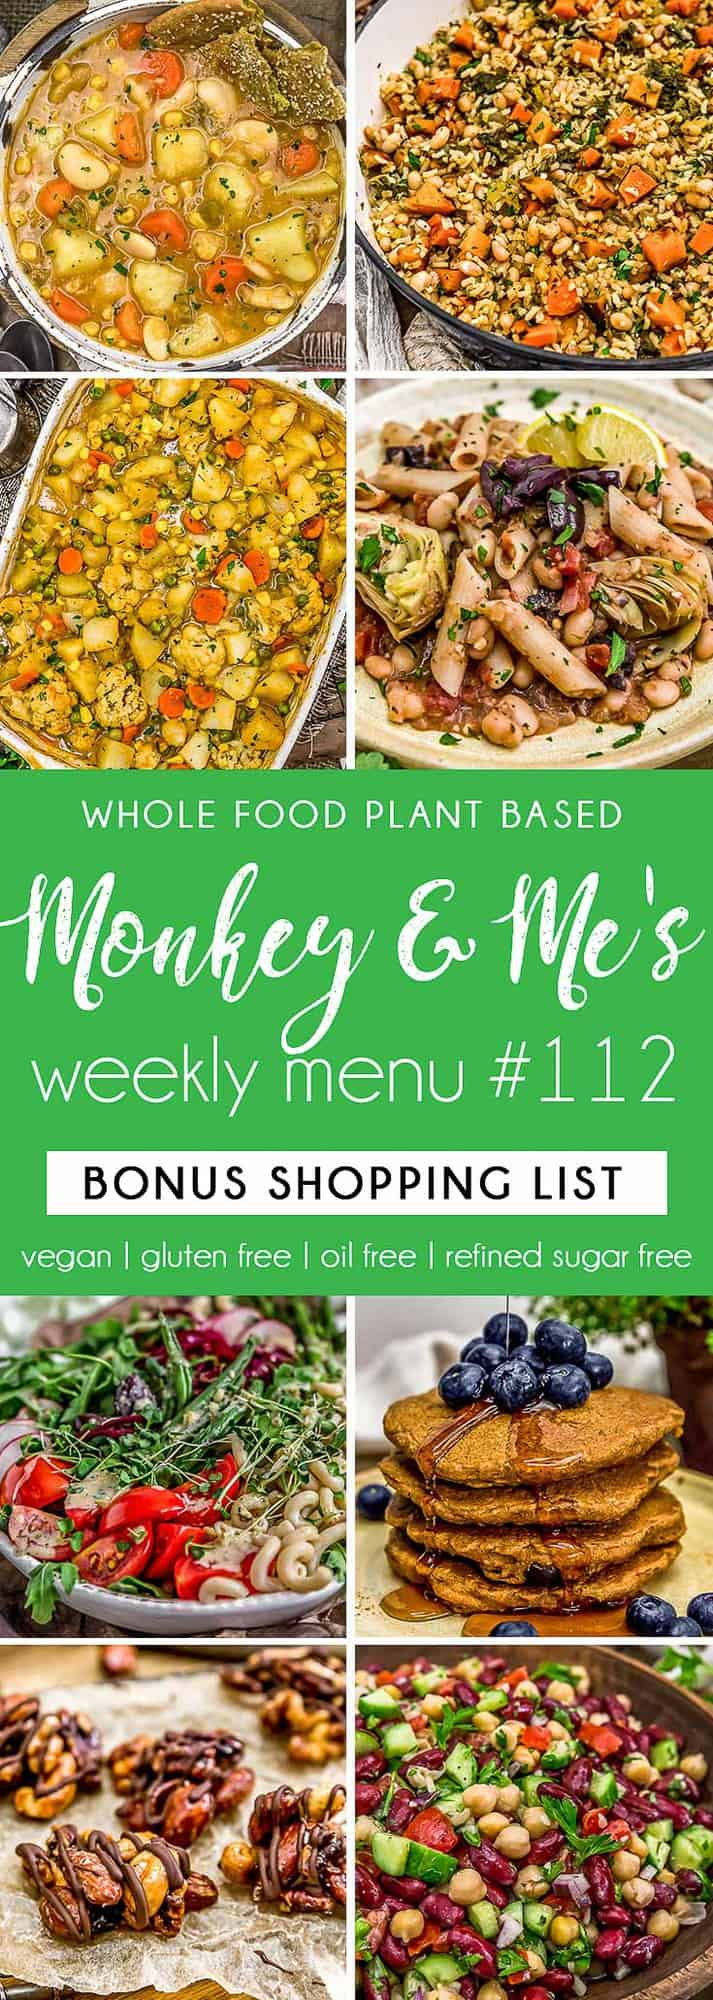 Monkey and Me's Menu 112 featuring 8 recipes